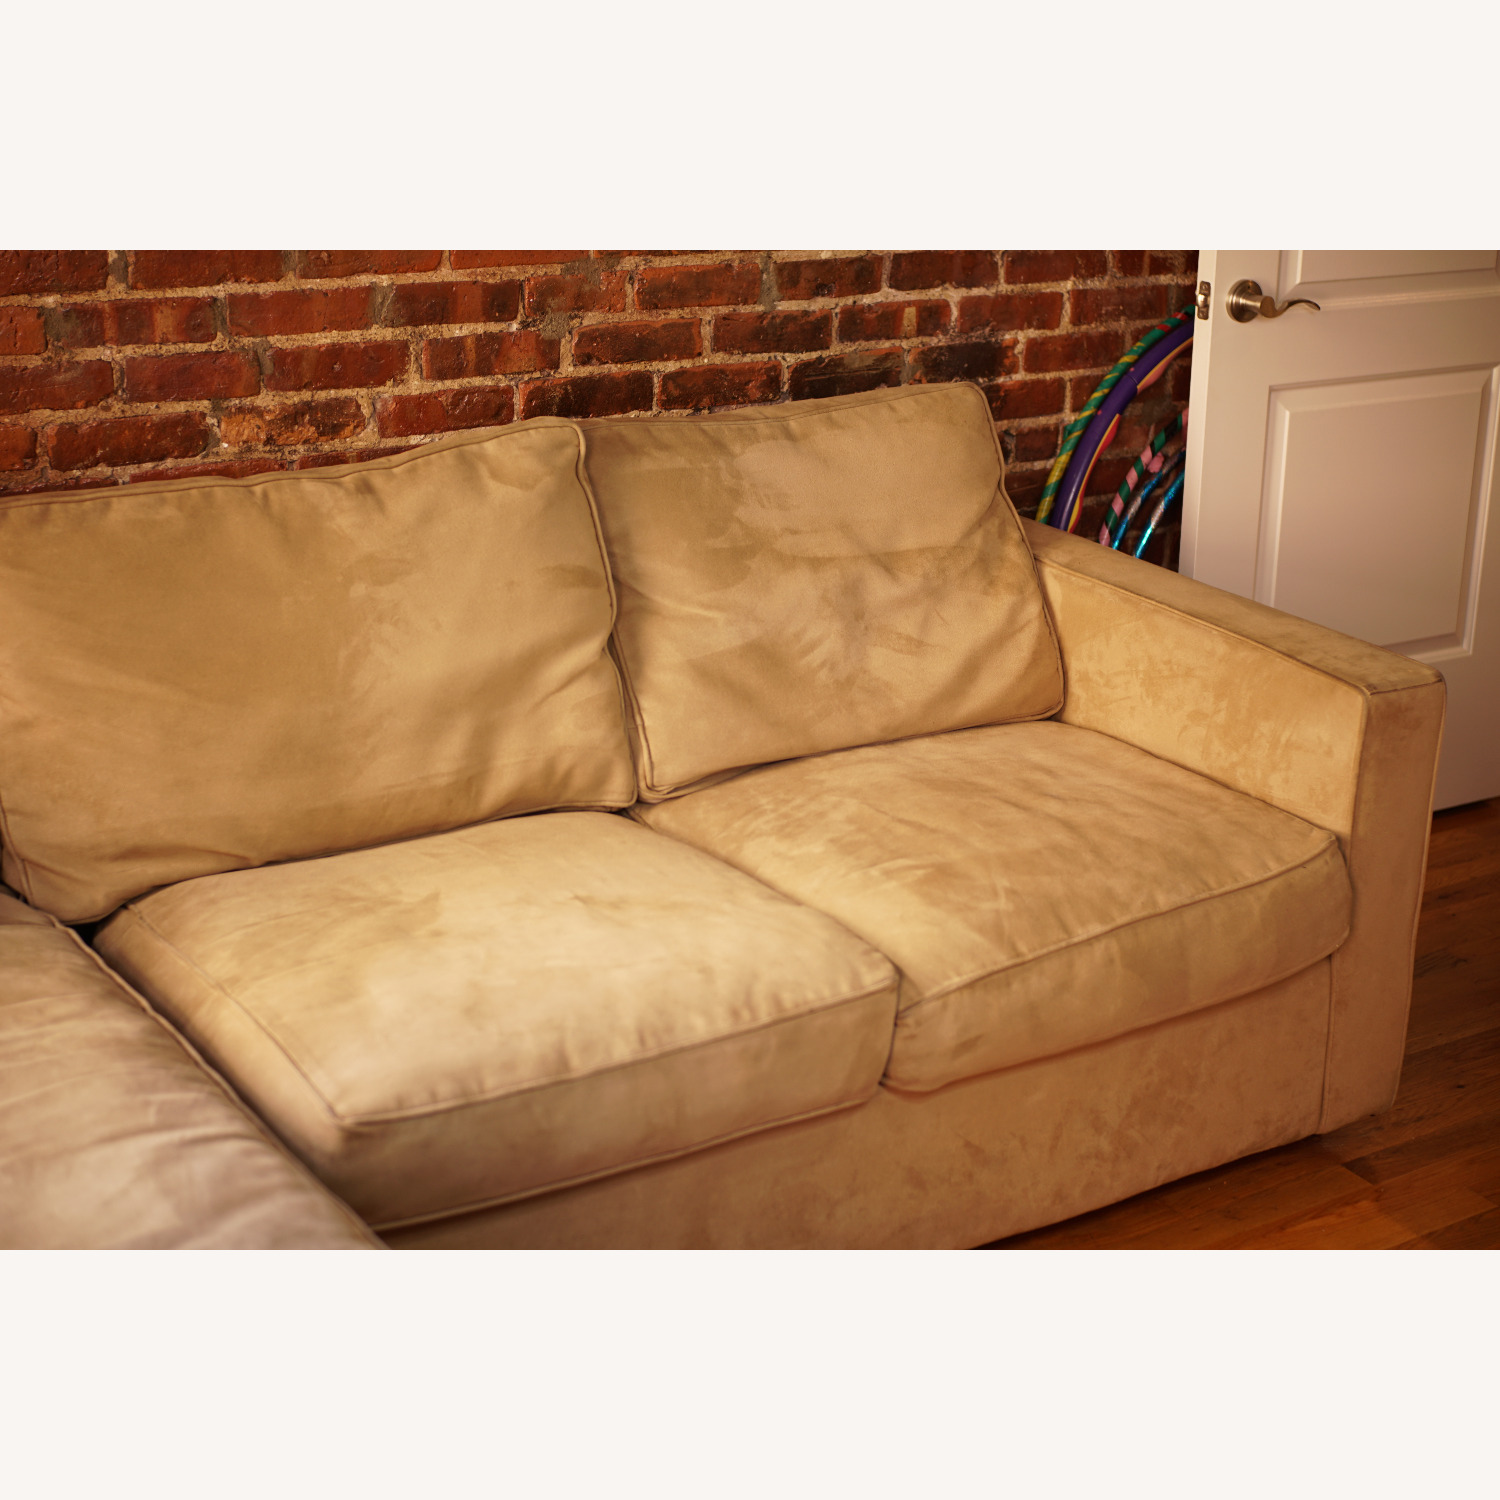 Medium Comfy Couch - image-1